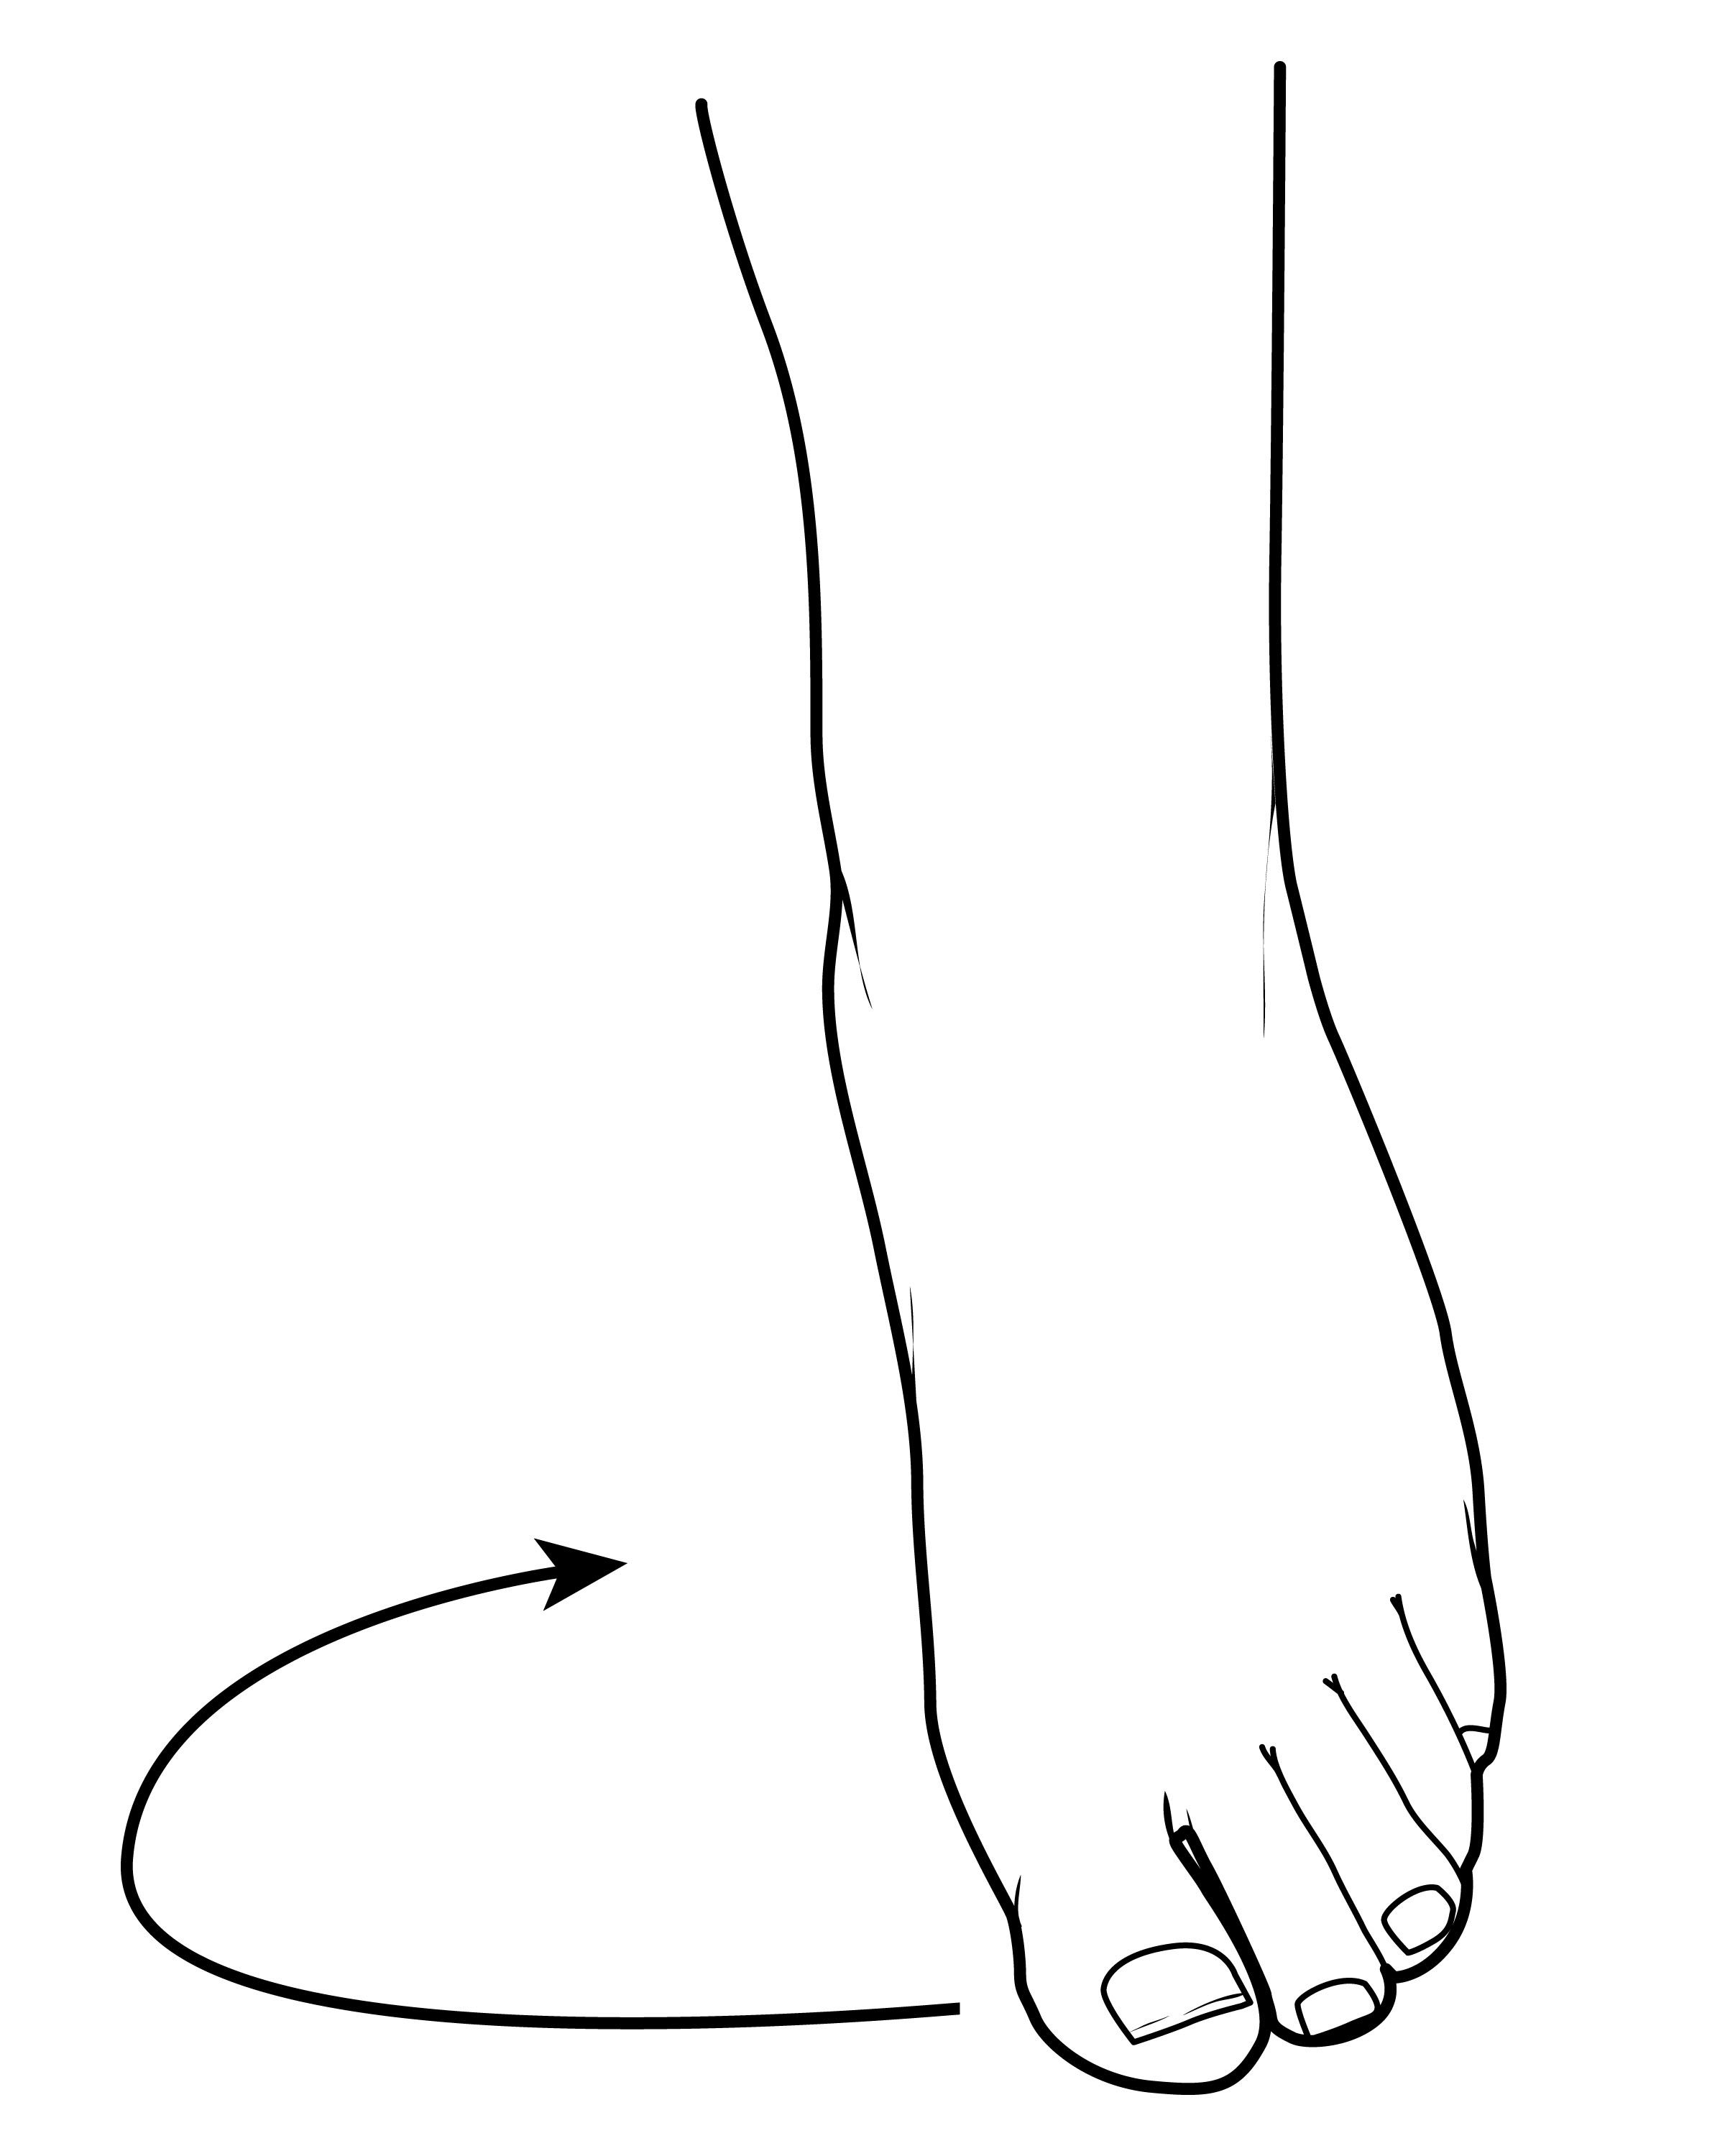 Ankle range of motion